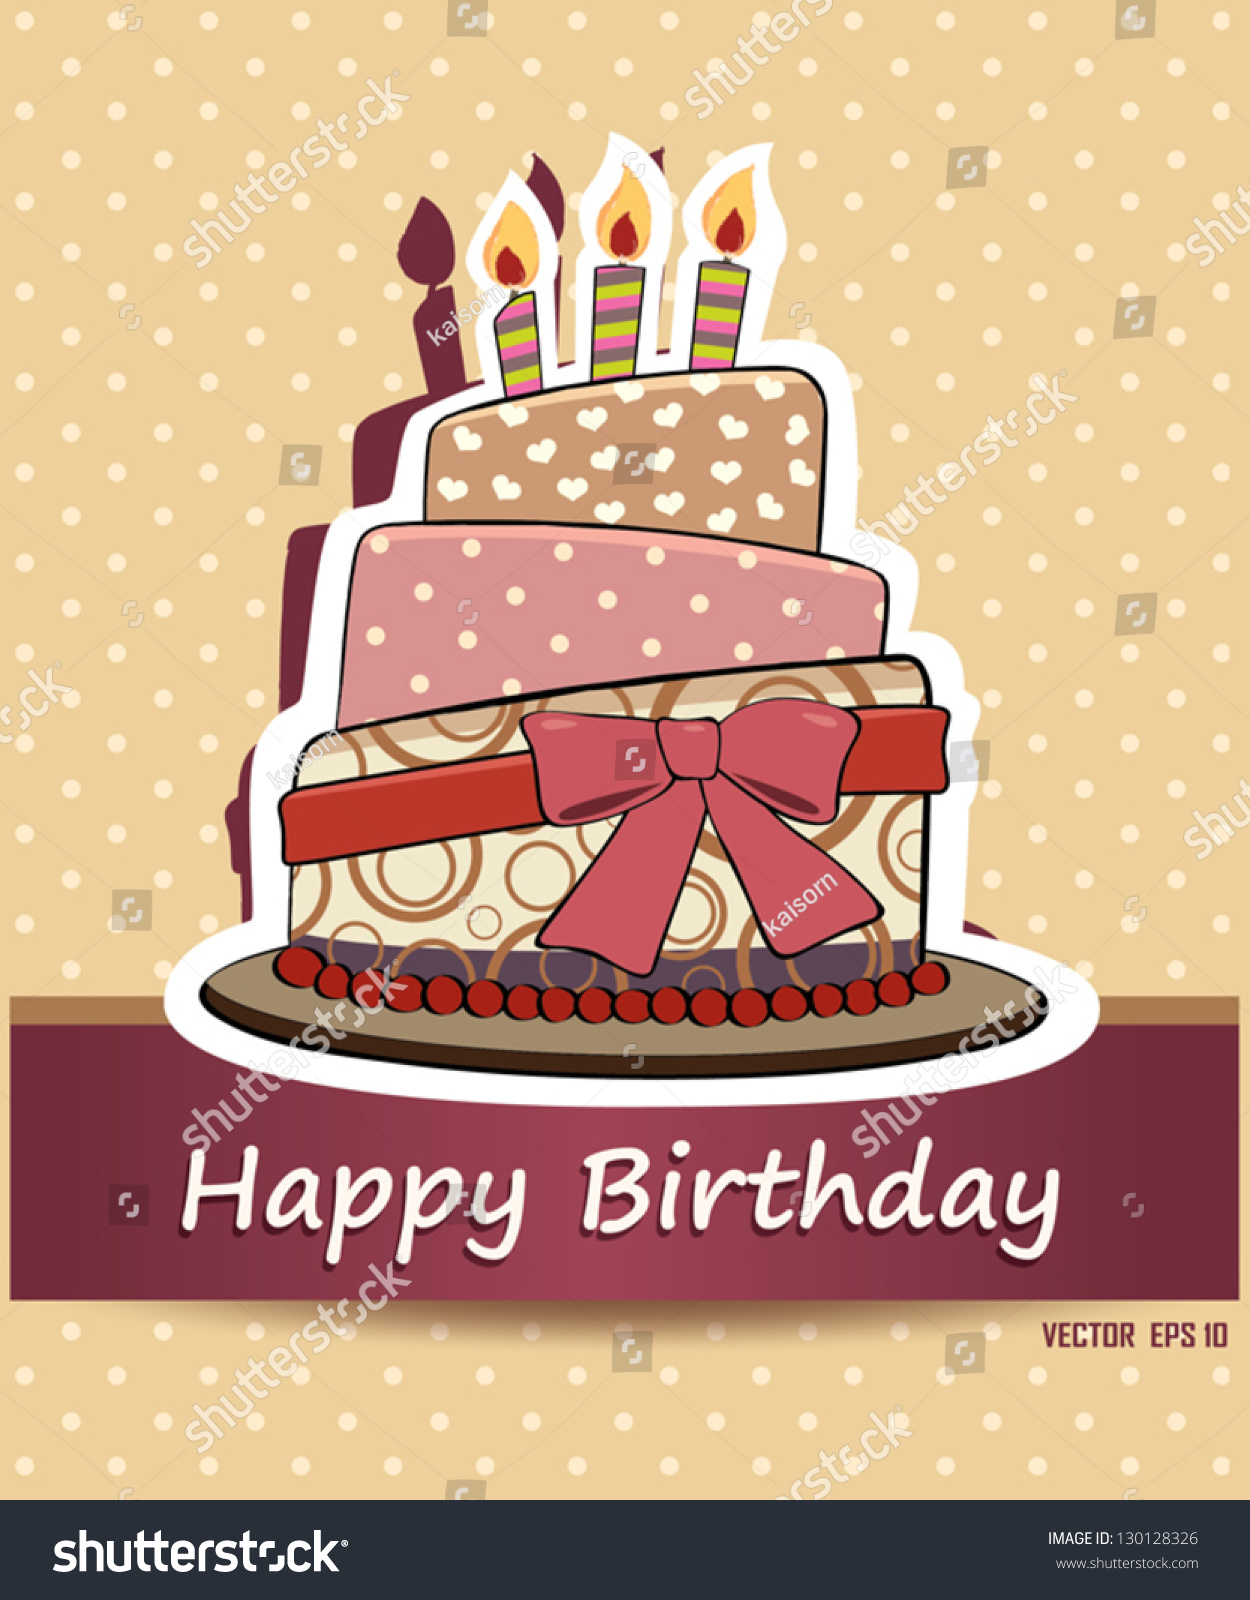 Vector Happy Birthday Card Birthday Cake Stock Vector 130128326